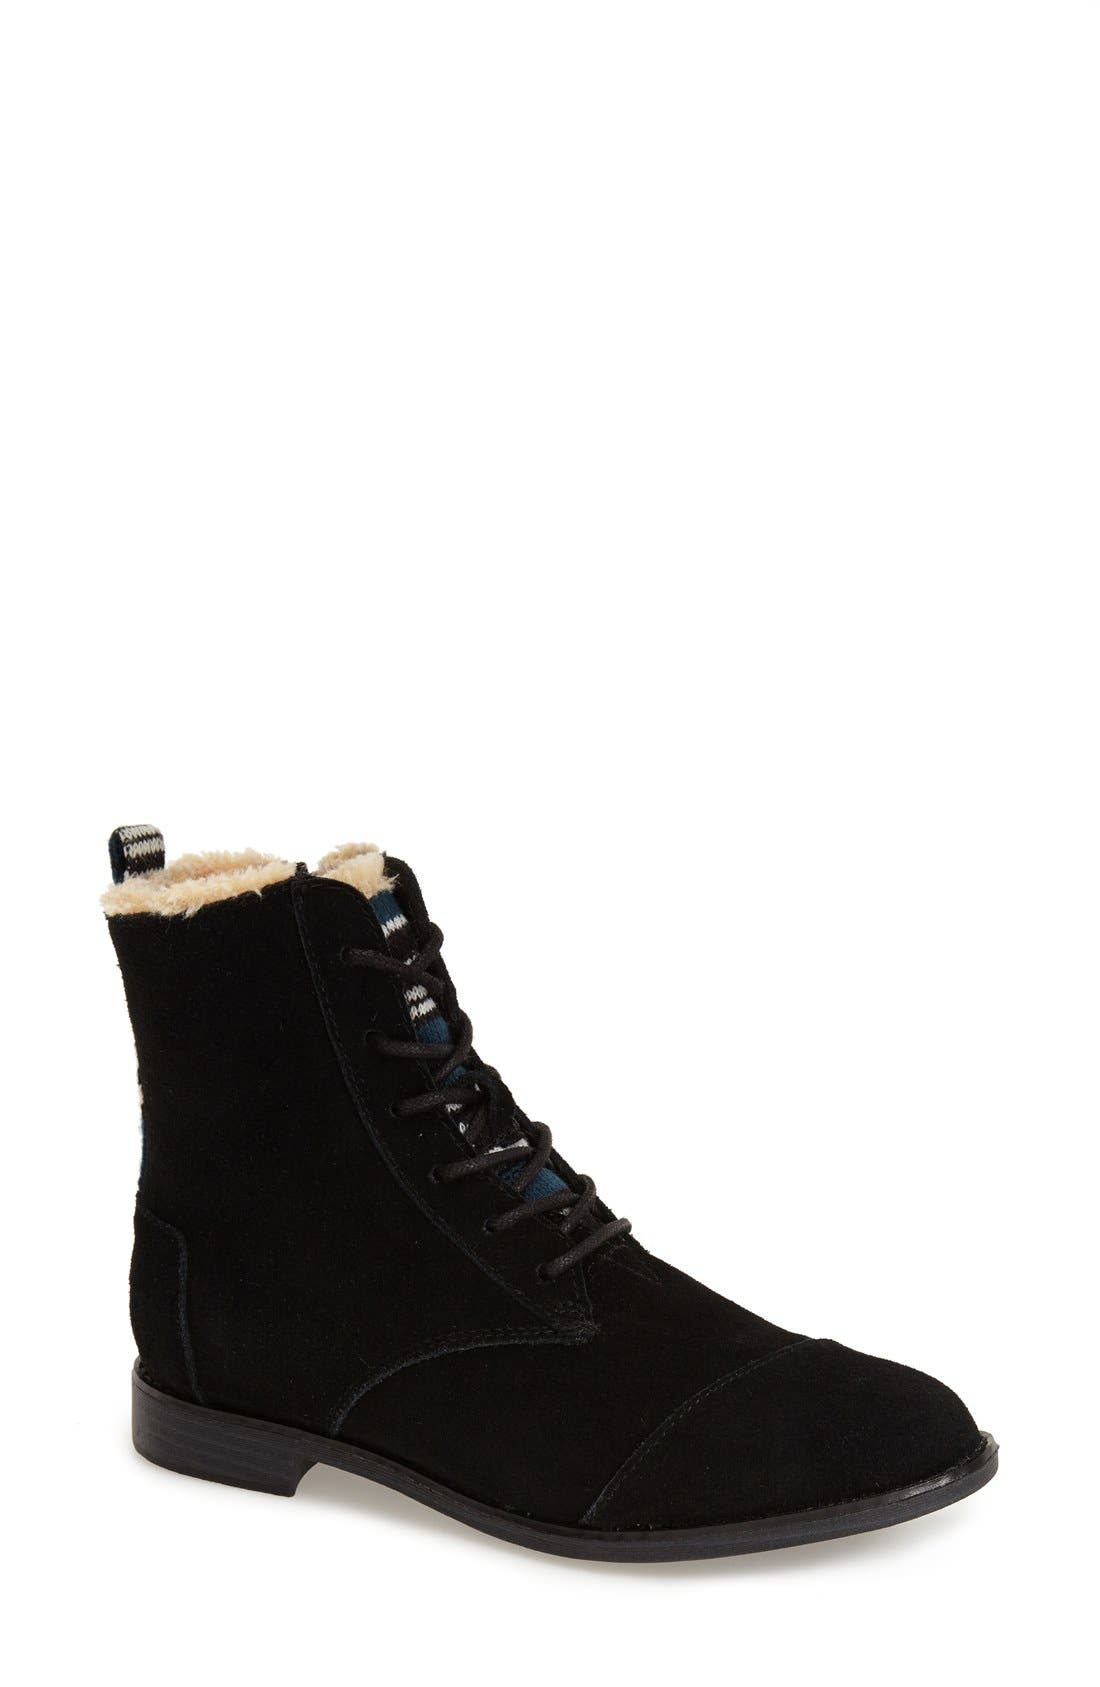 Alternate Image 1 Selected - TOMS 'Alpa' Water Resistant Suede Boot (Women)